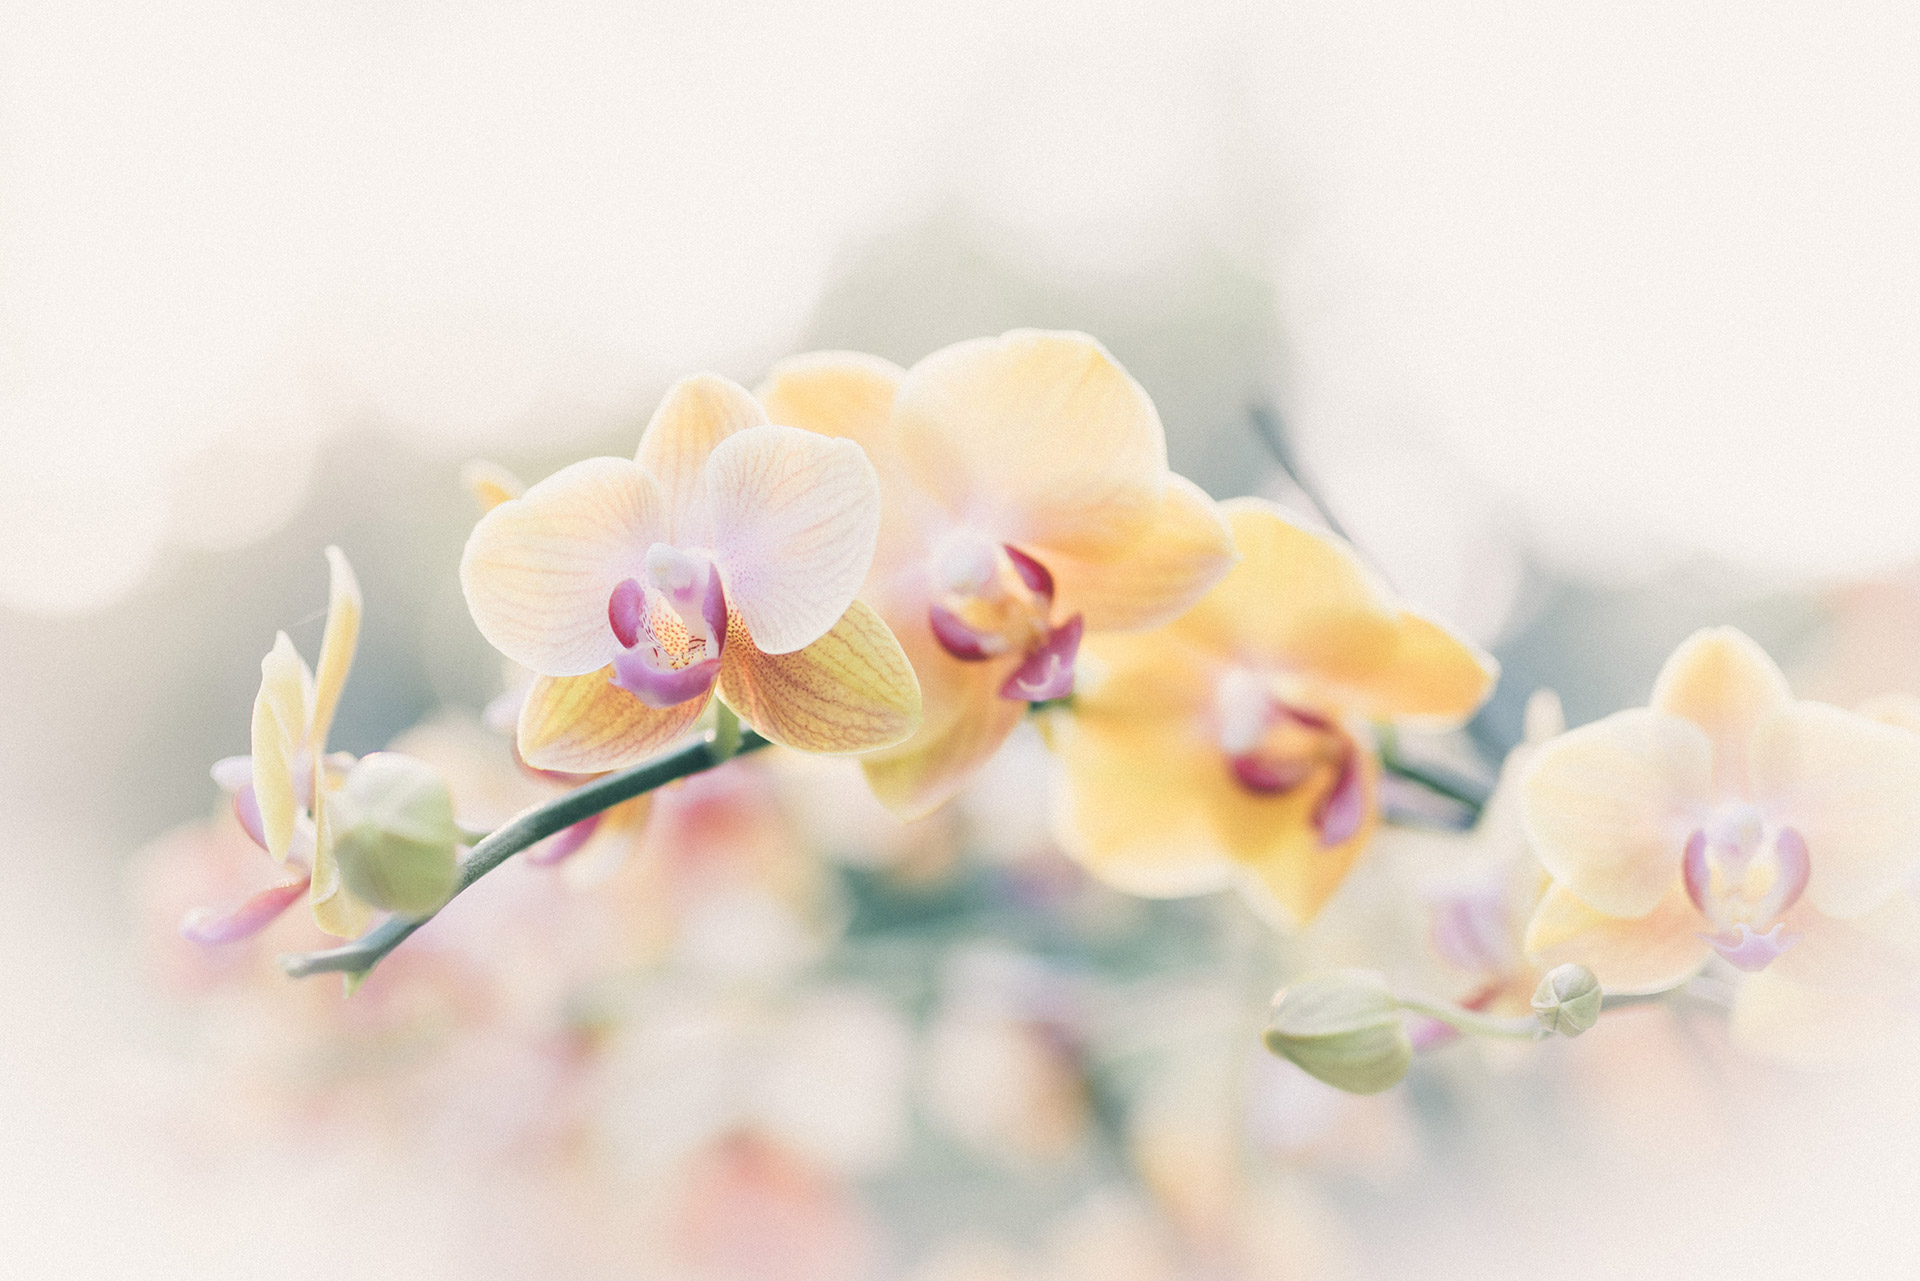 Orchids in Vietnam by DOMINIK PHOTOGRAPHY